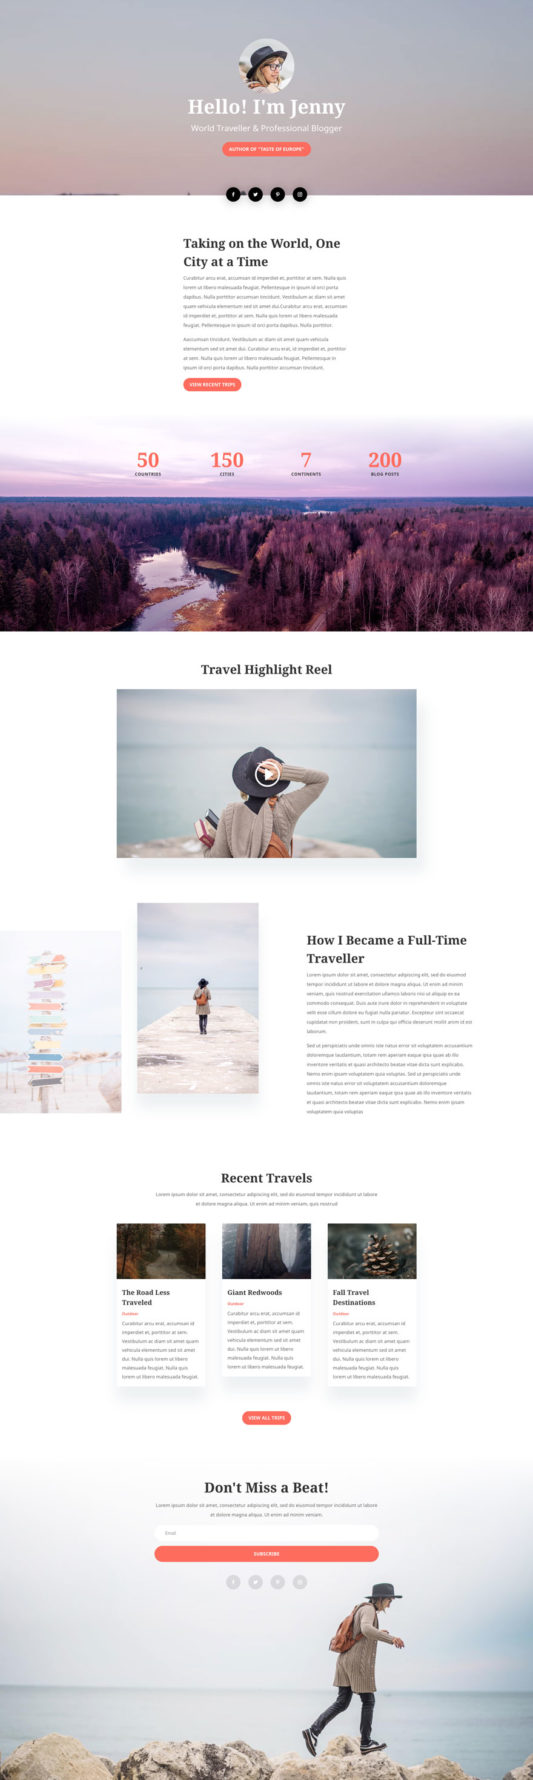 Travel Blog Web Design 1